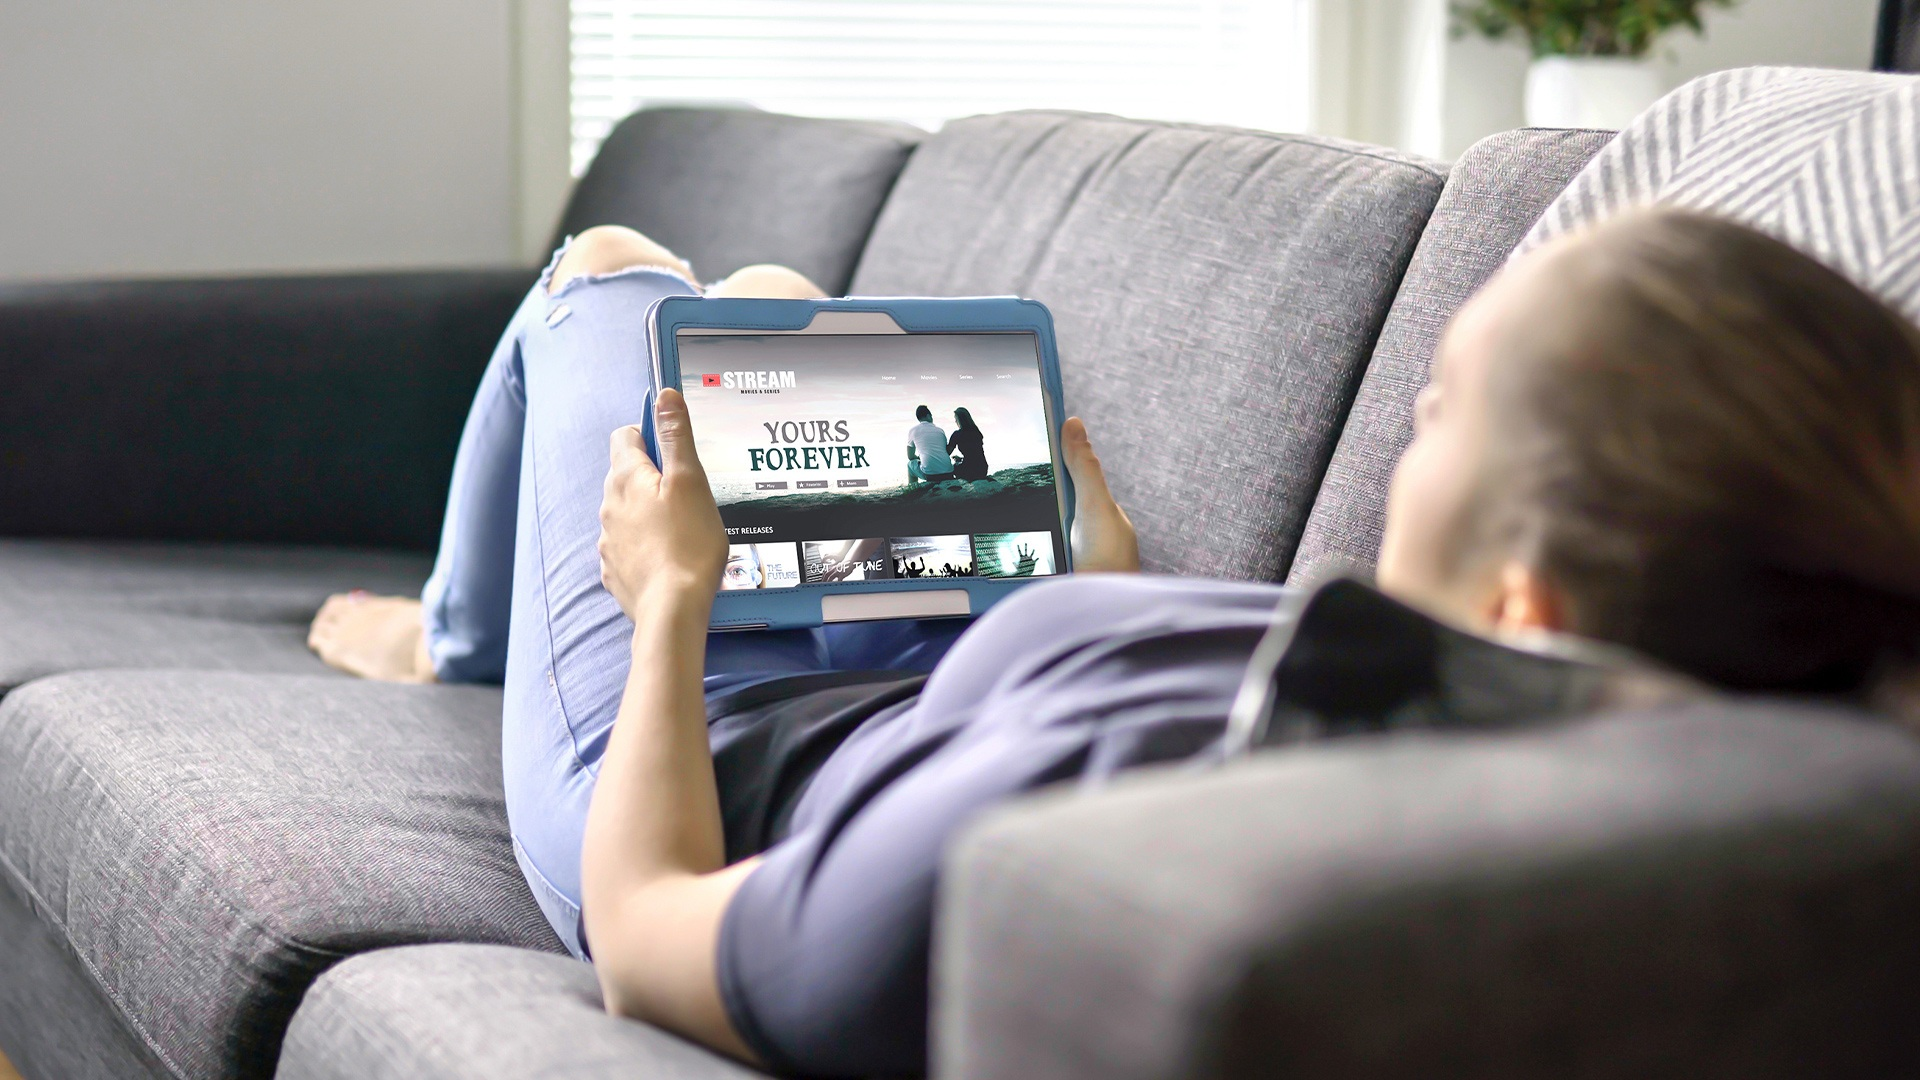 Woman lying on a sofa watching a streaming video on her tablet device, conveying how AV1 codec is used.